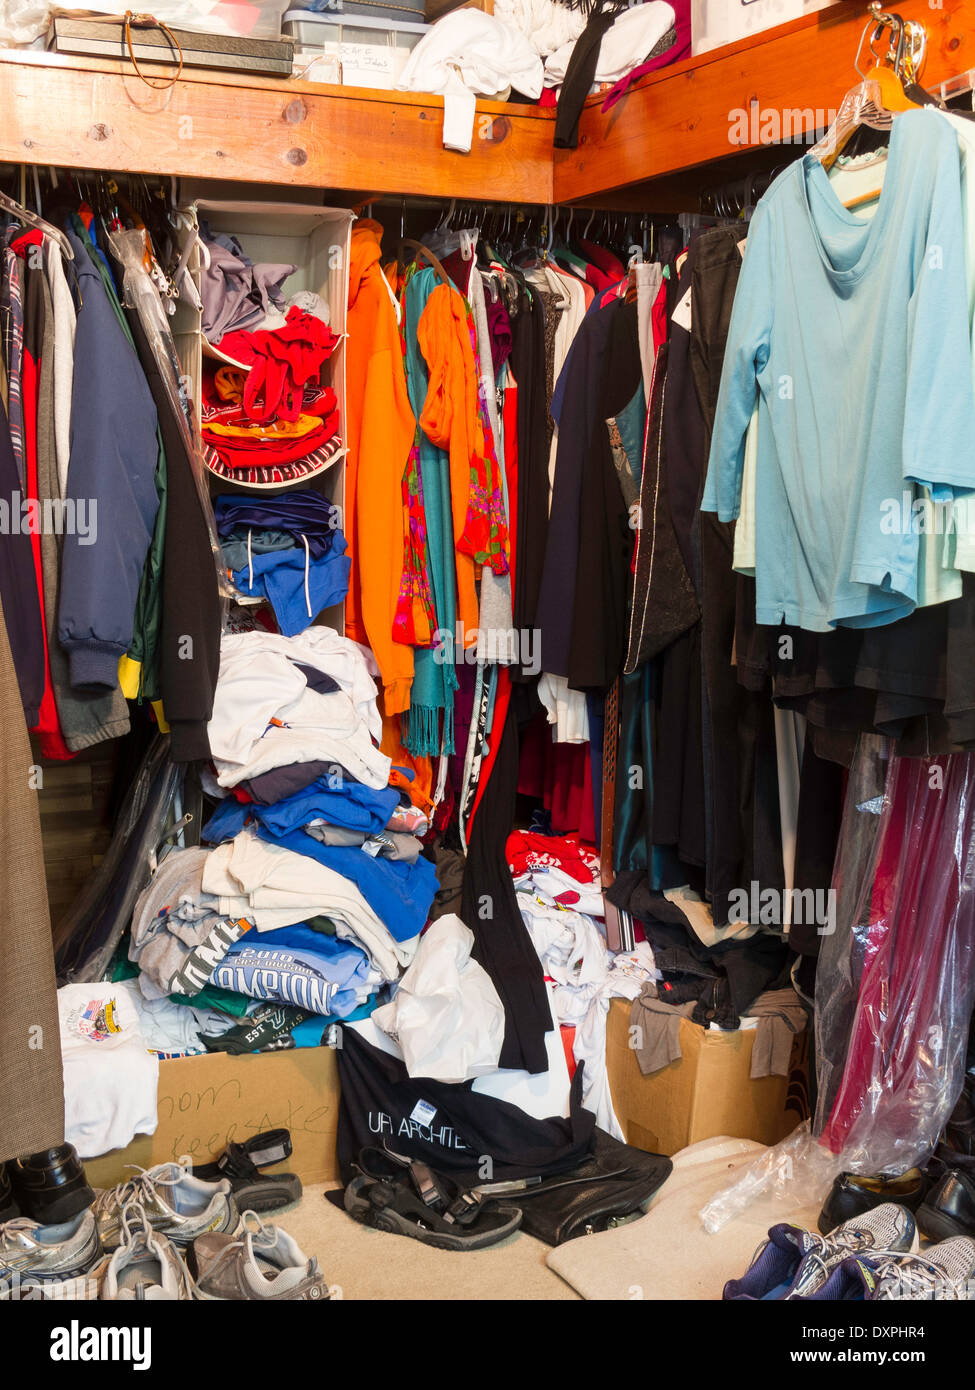 Messy Closet Stock Photo 68109080